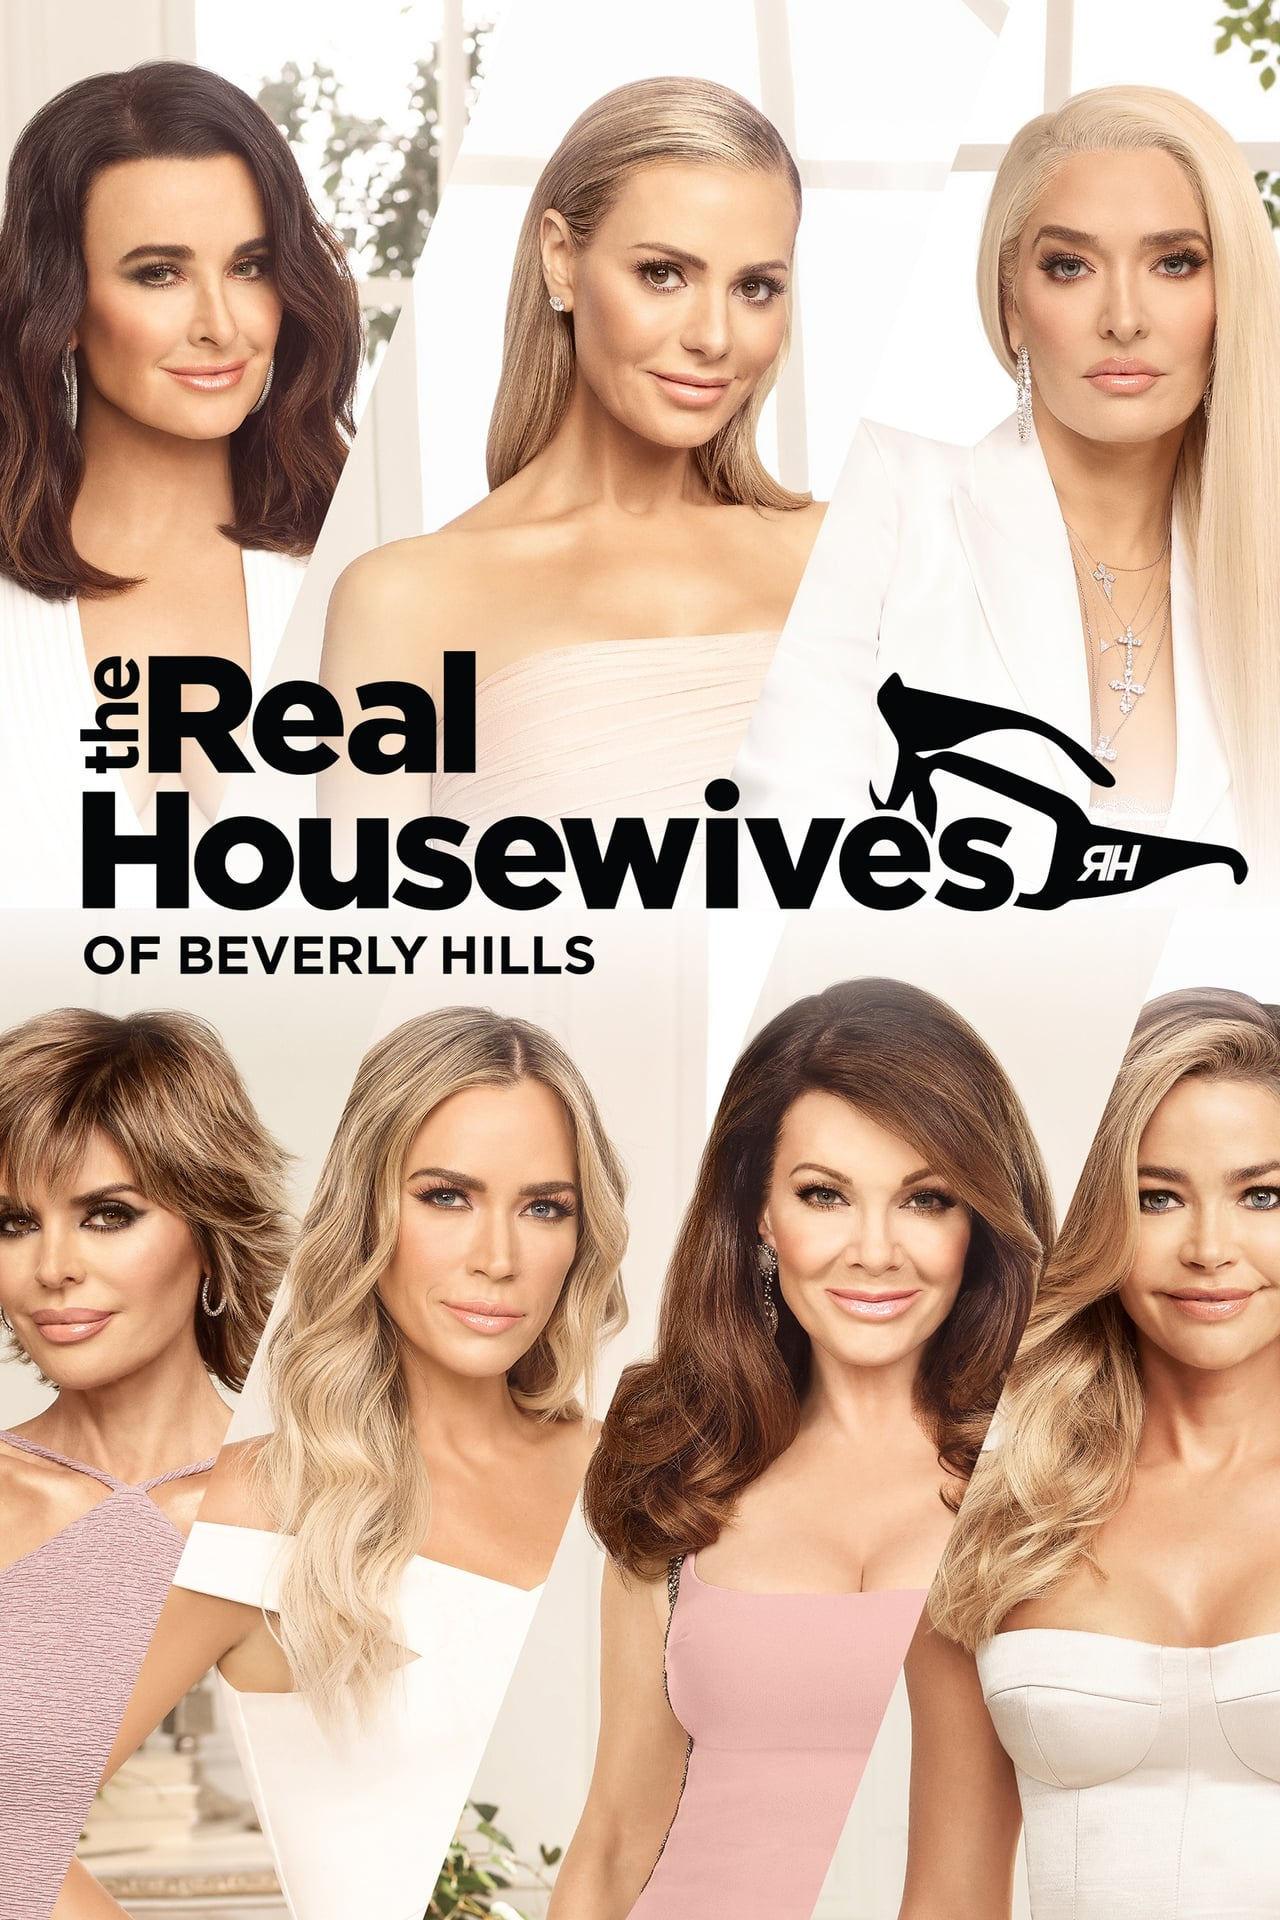 Alle Serien Online Wer Streamt The Real Housewives Of Beverly Hills?